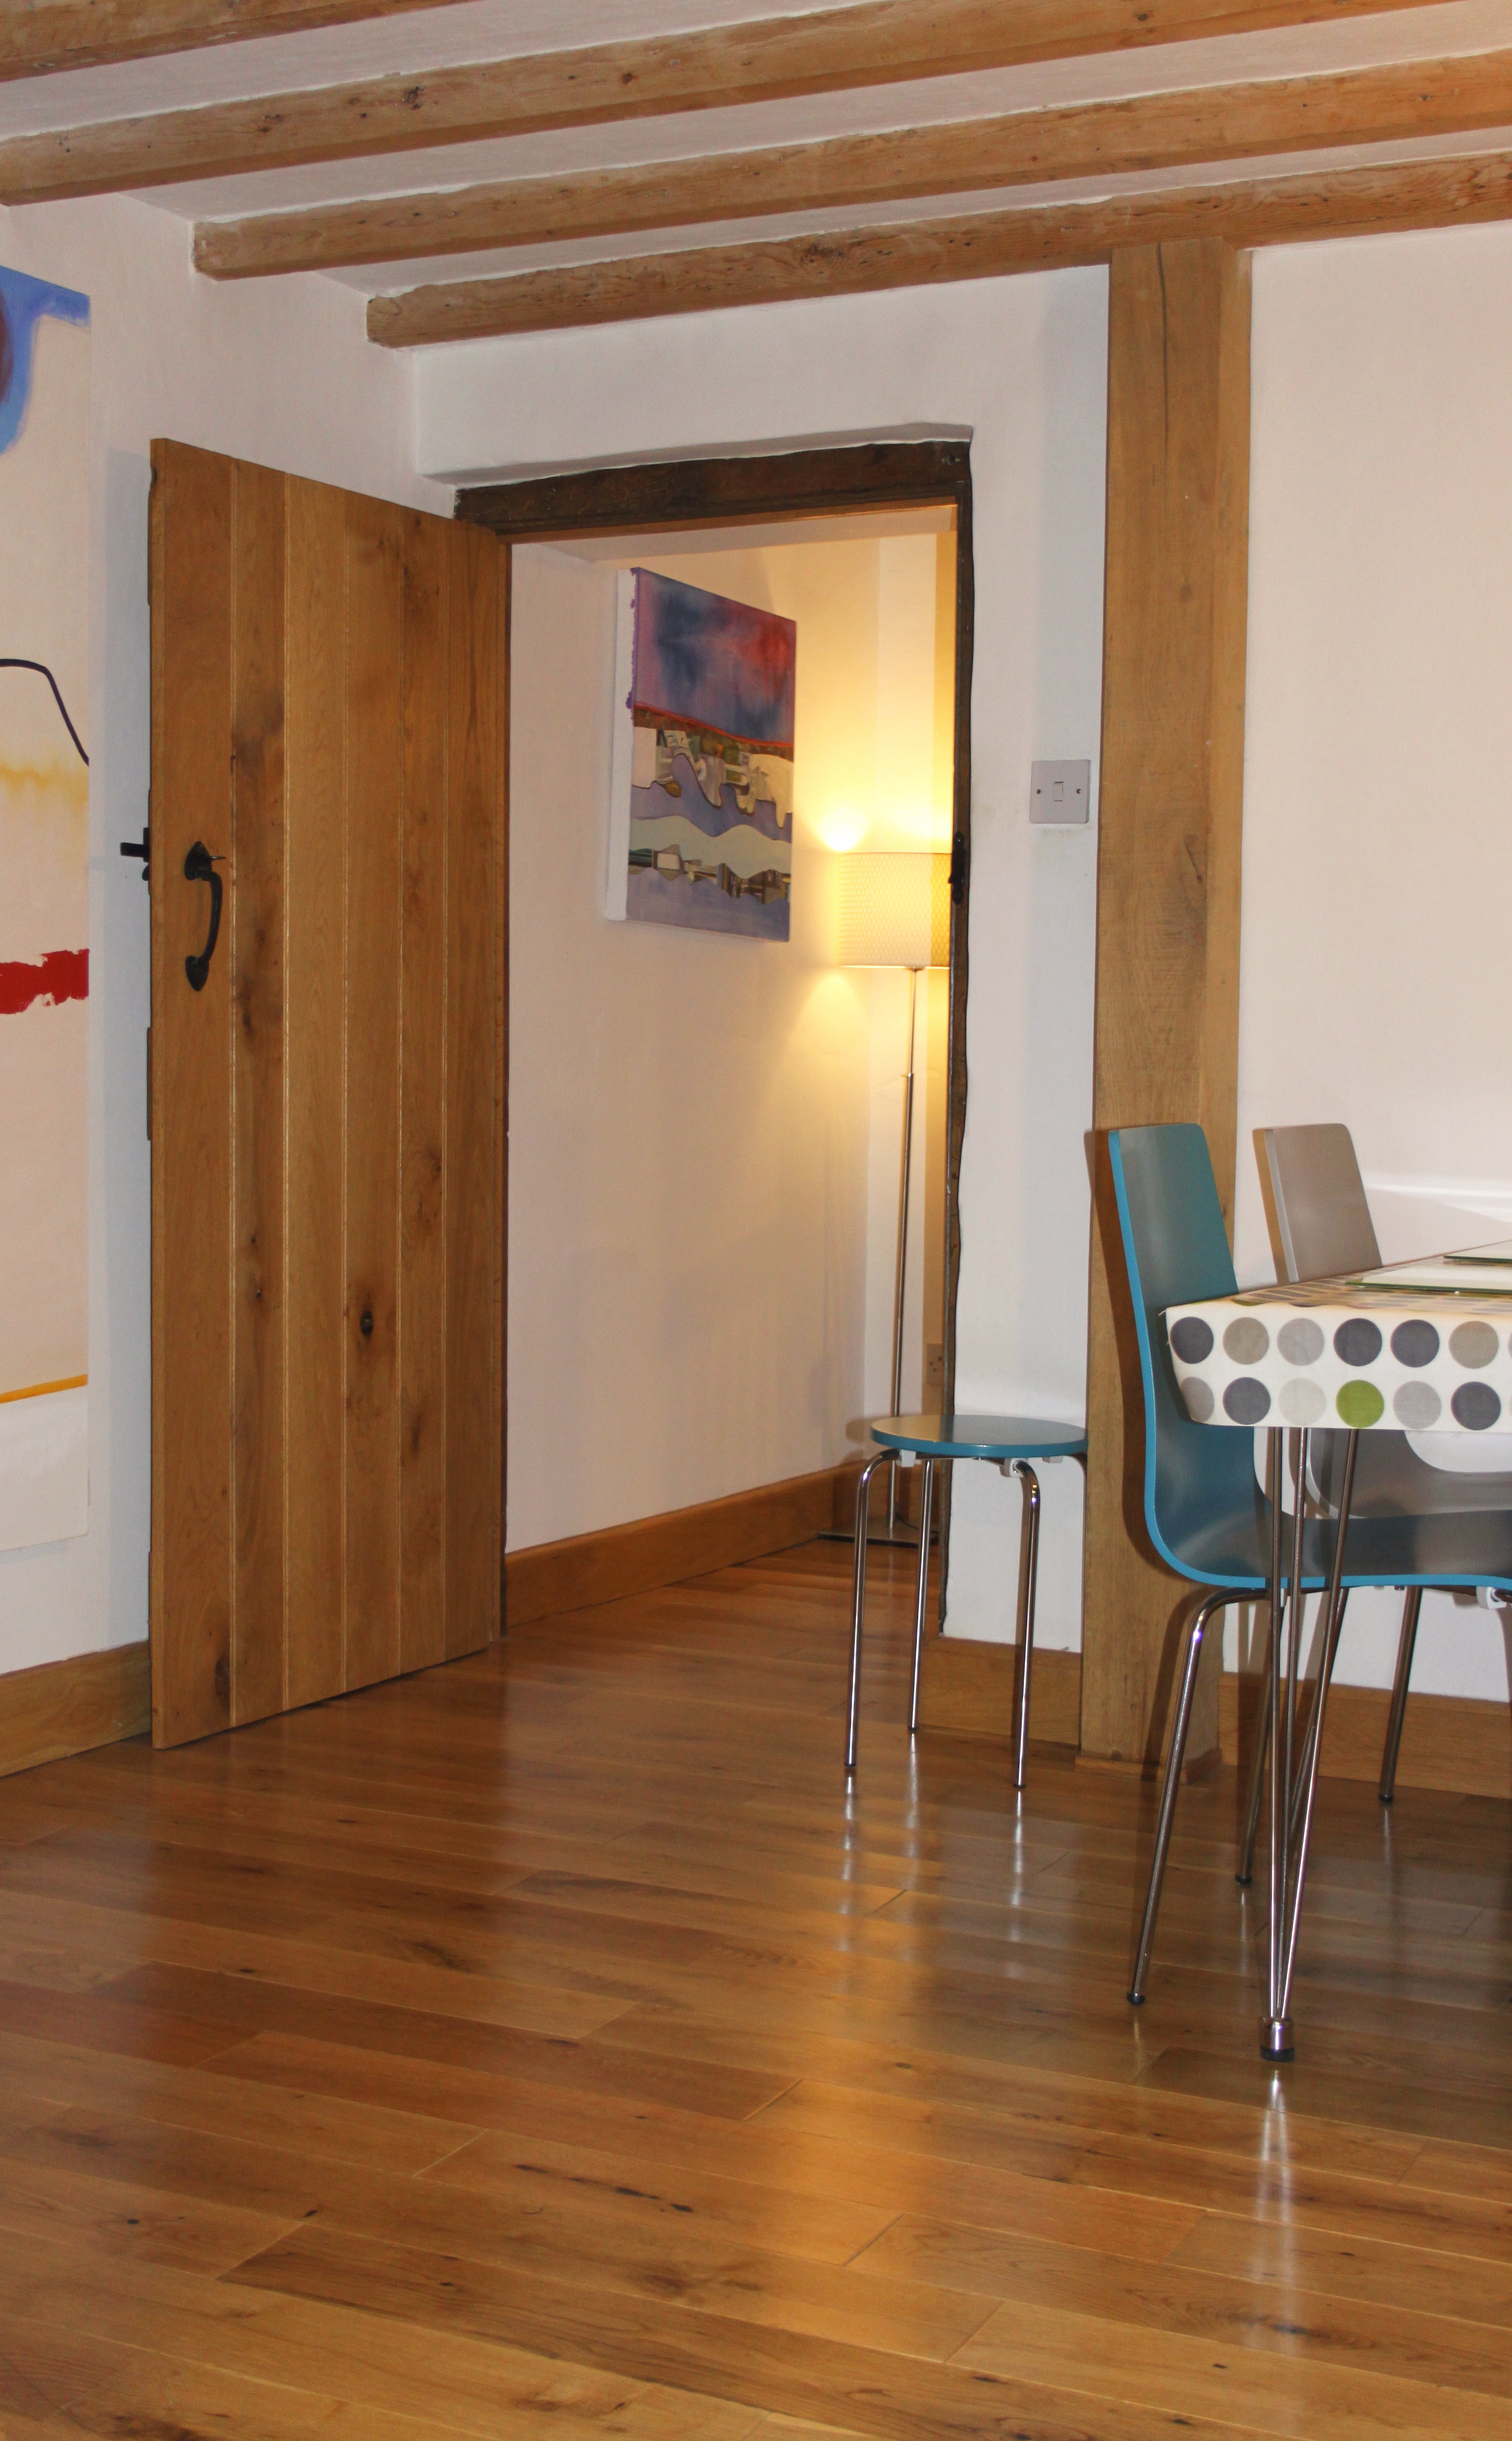 H.T.Hughes provided the beautiful solid oak floor and ledge and brace door with wonderful finish